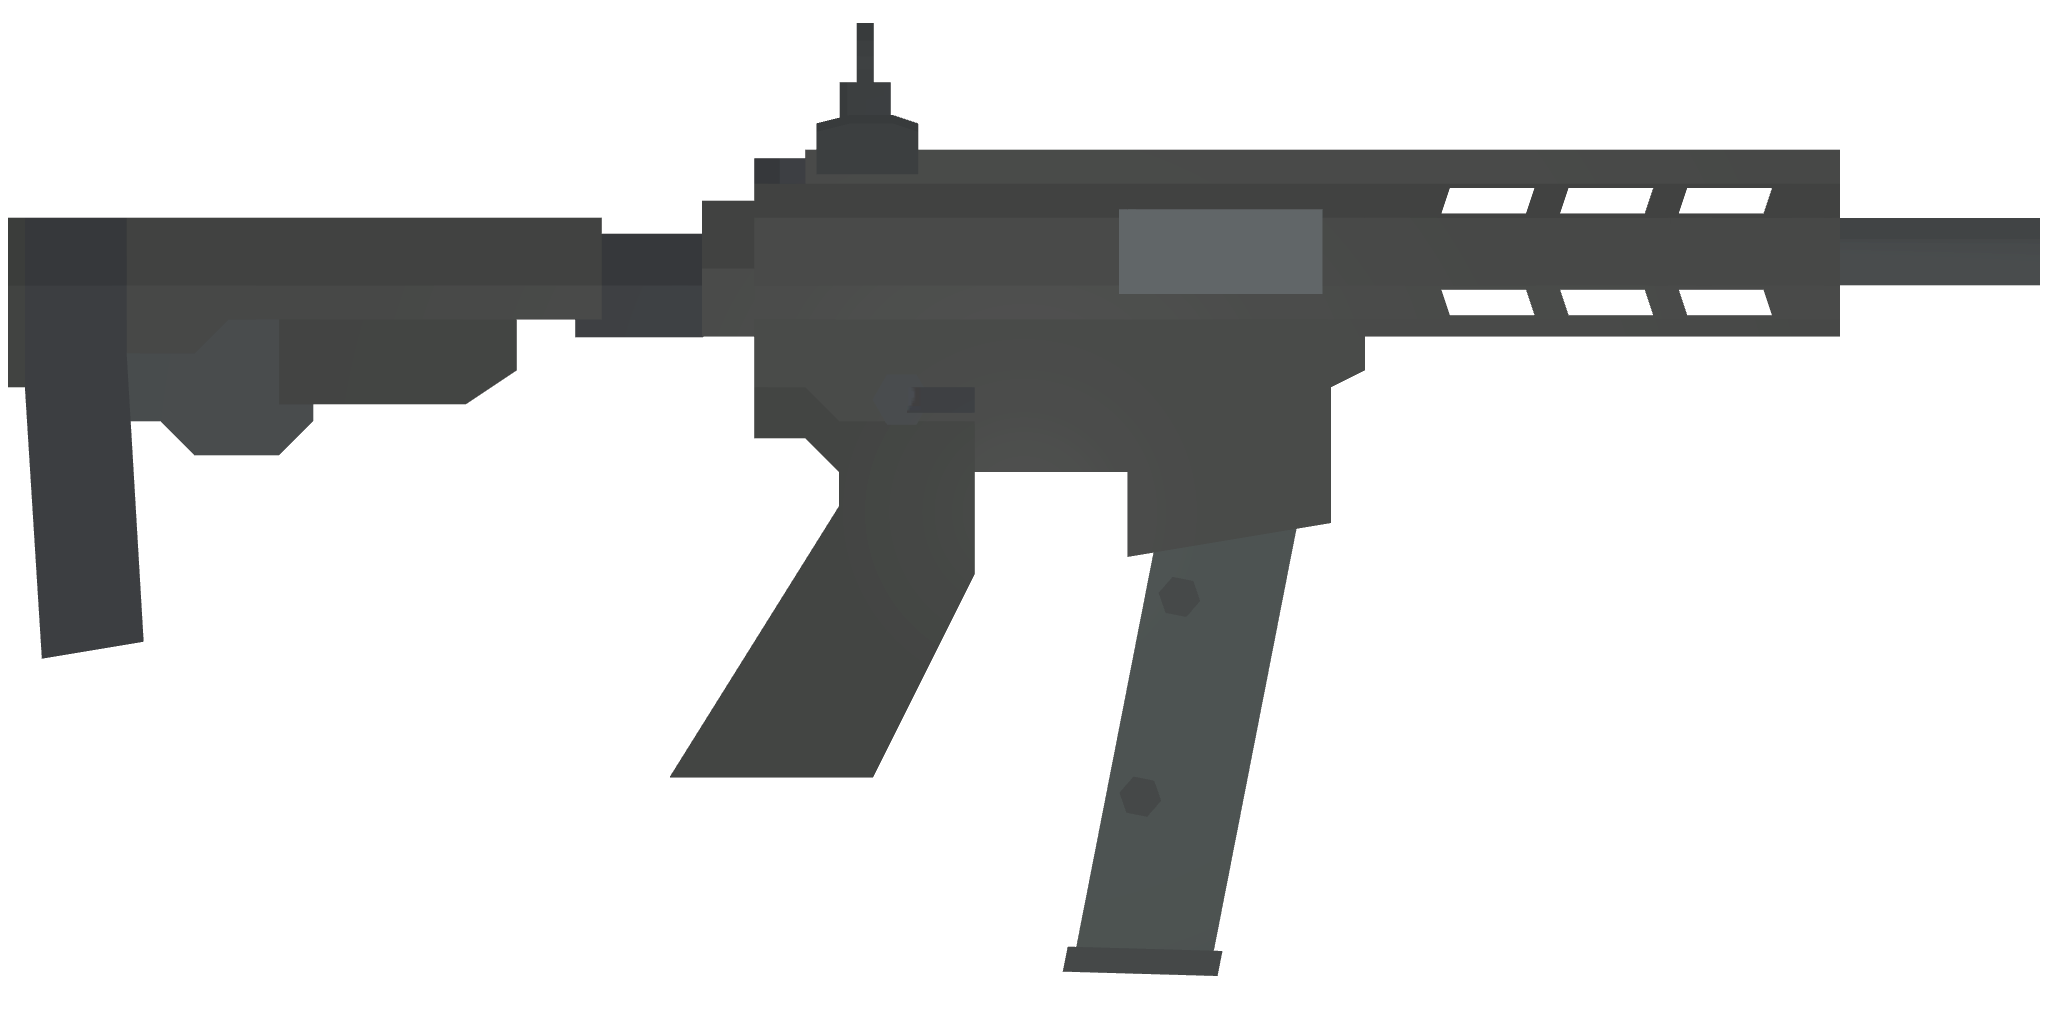 Unturned Uncreated Warfare Mods & All ID List + Attachments - USA Weapons - 8F6352F